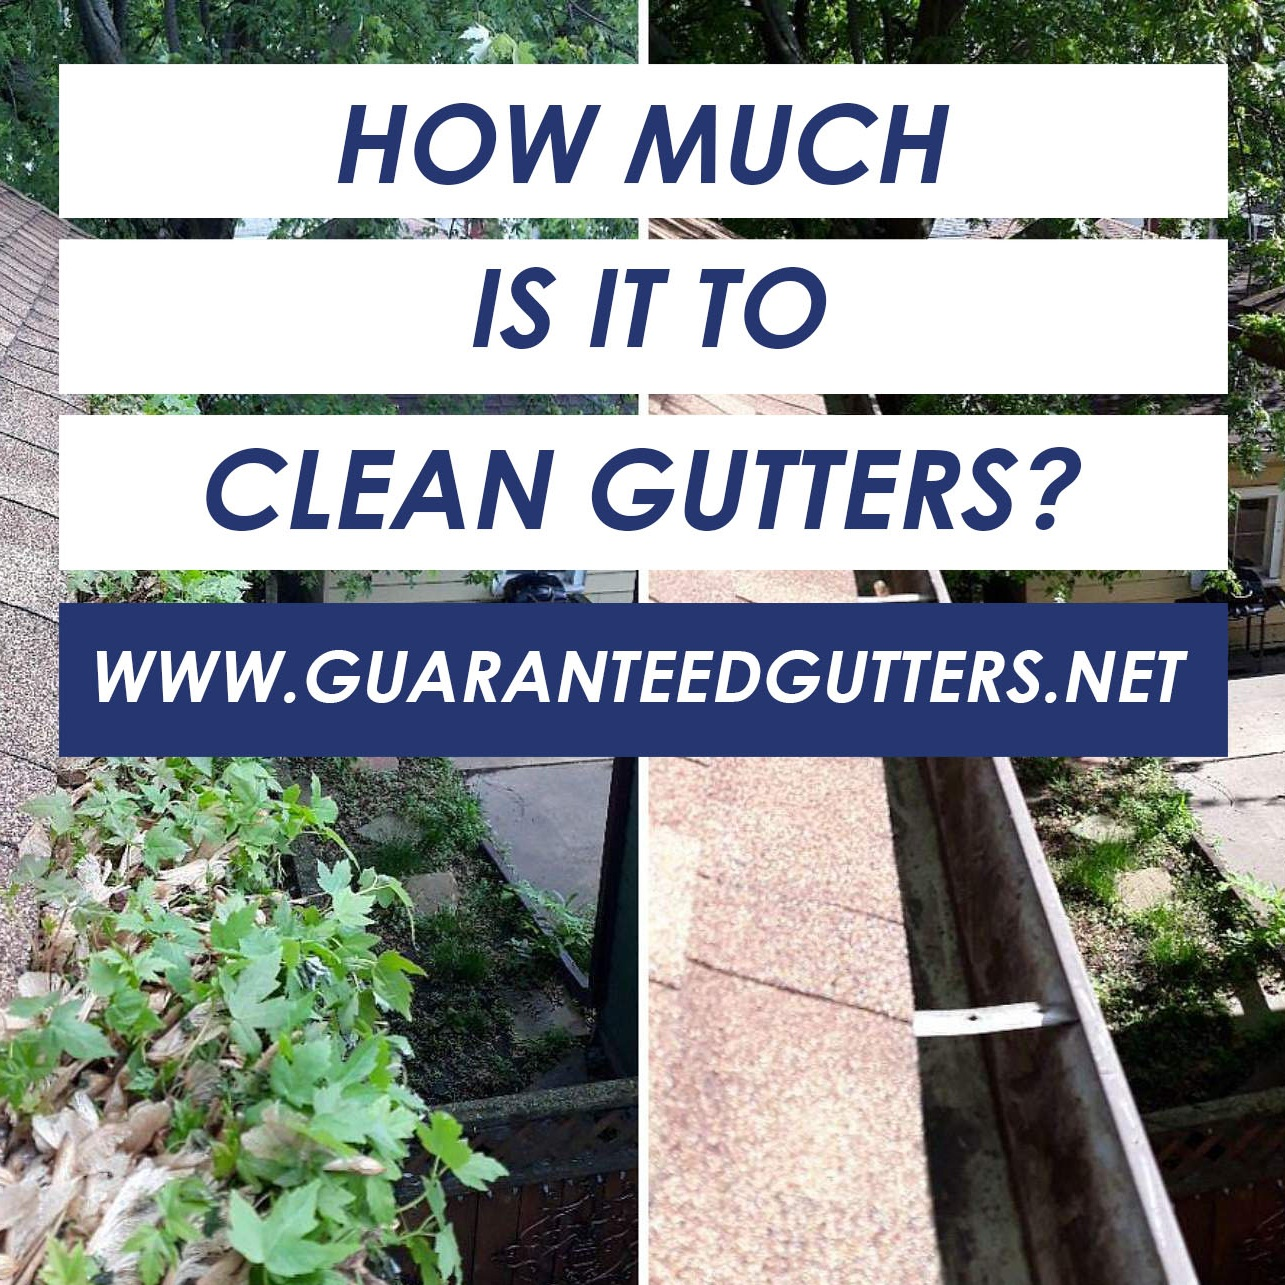 How+much+is+it+to+clean+gutters-Guaranteed+Gutters+Blog-Thumbnail.jpg